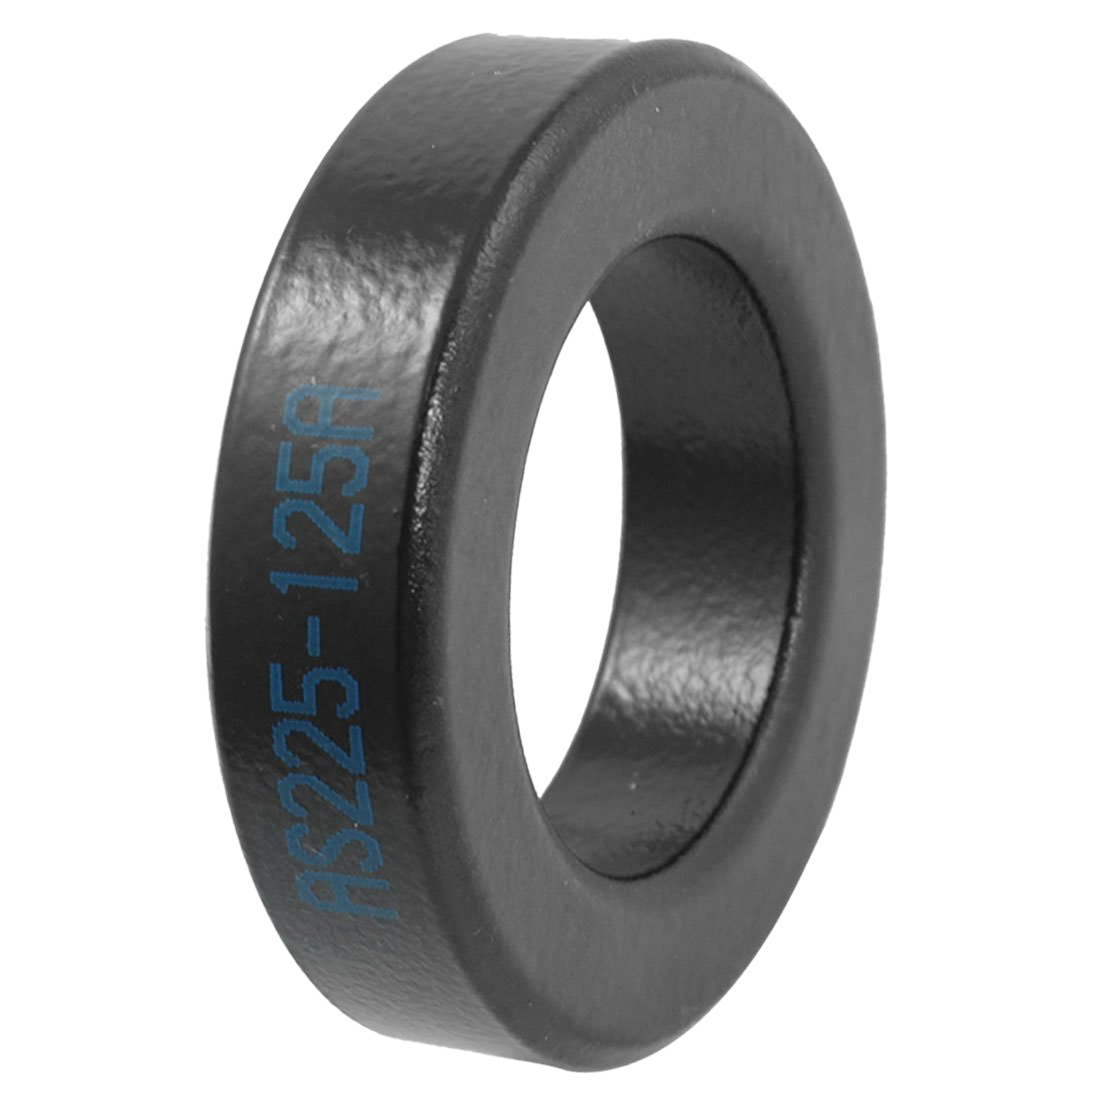 AS225-125A ferrite rings, toroidal cores in black iron for electrical inductors toroidal transformer 32mm inner diameter ferrite core as200 125a black